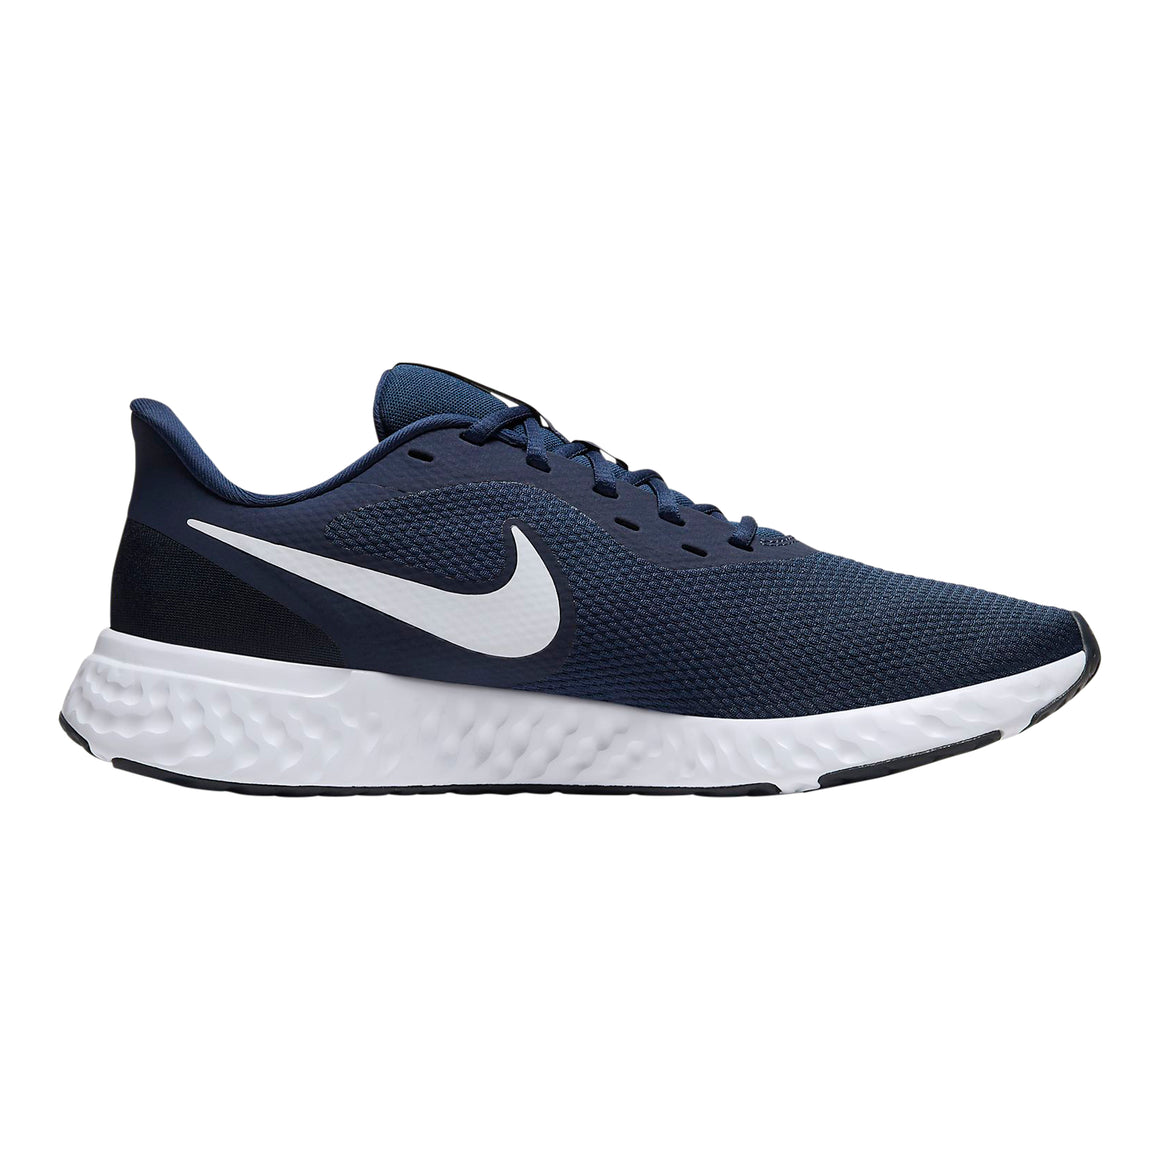 Revolution 5 Running Shoes for Men in Midnight Navy/White-Dark Obsidian